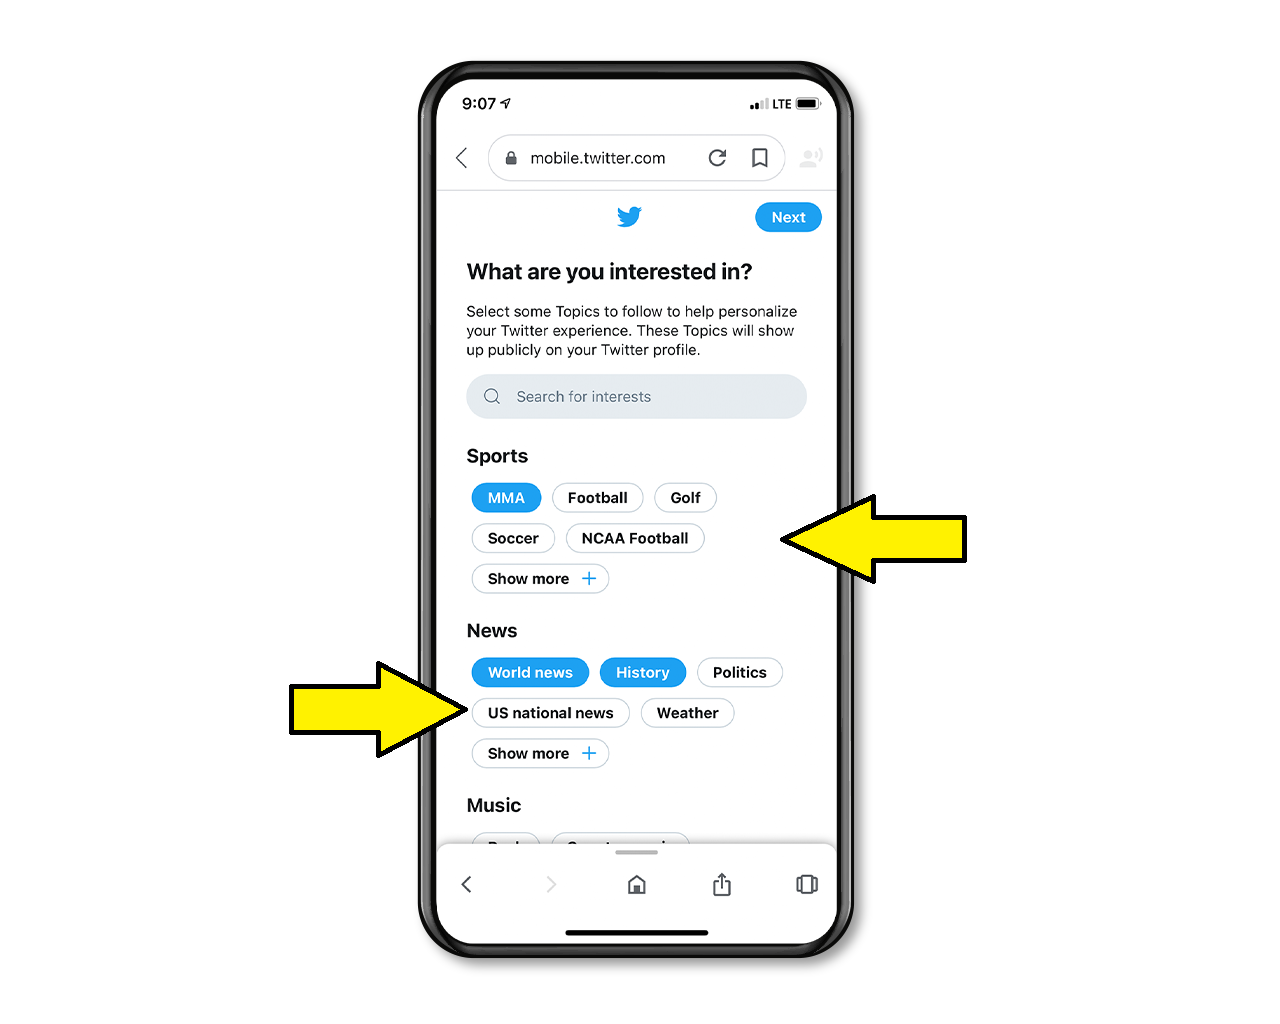 You can see topics that you may continue to follow when you register your Twitter account.